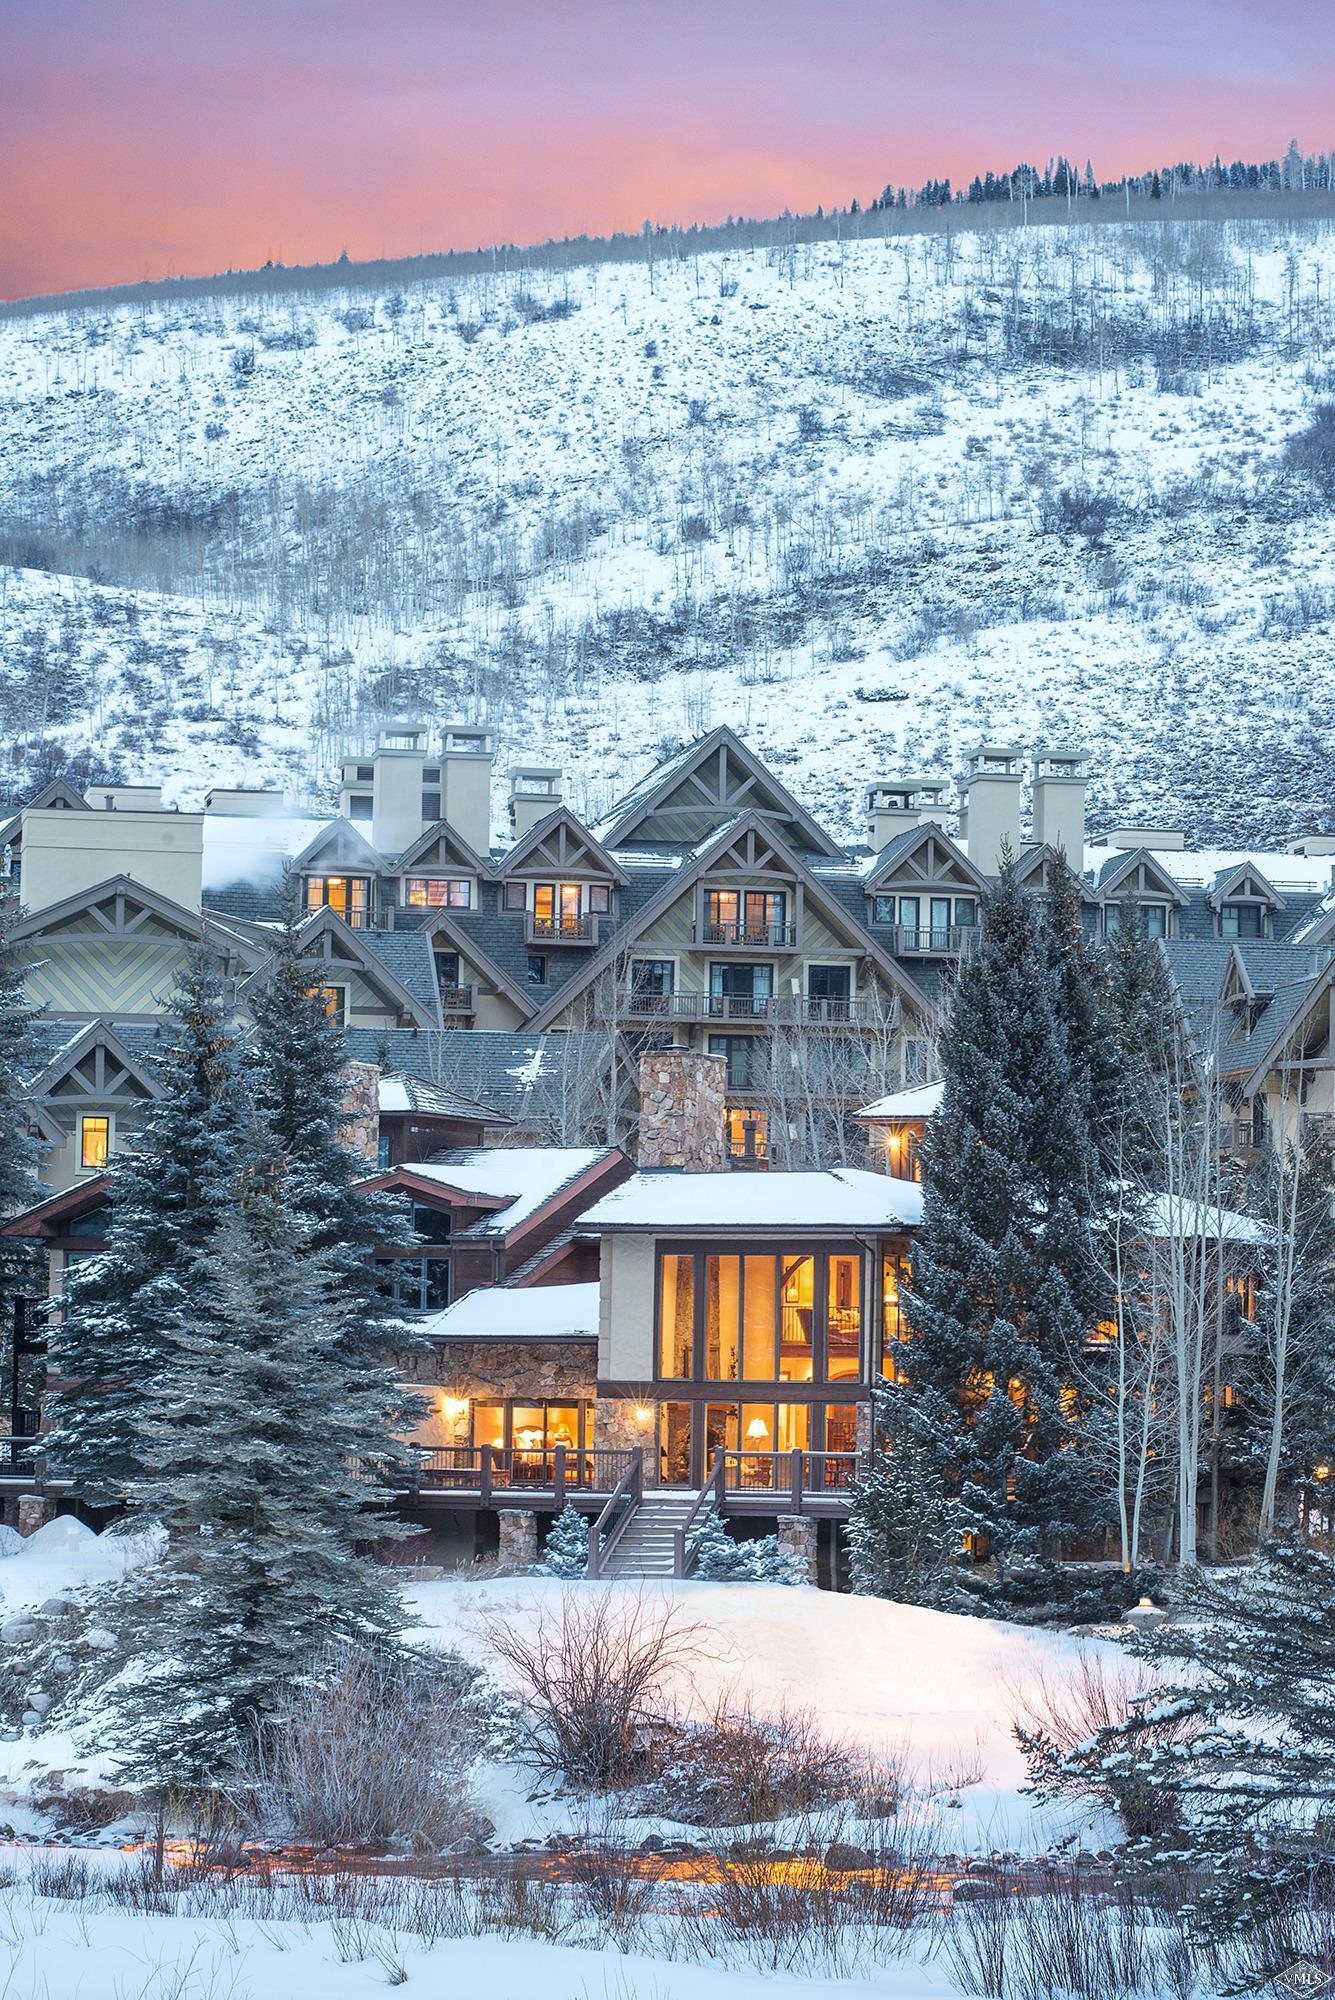 82 W Meadow Drive #A, Vail, CO 81657